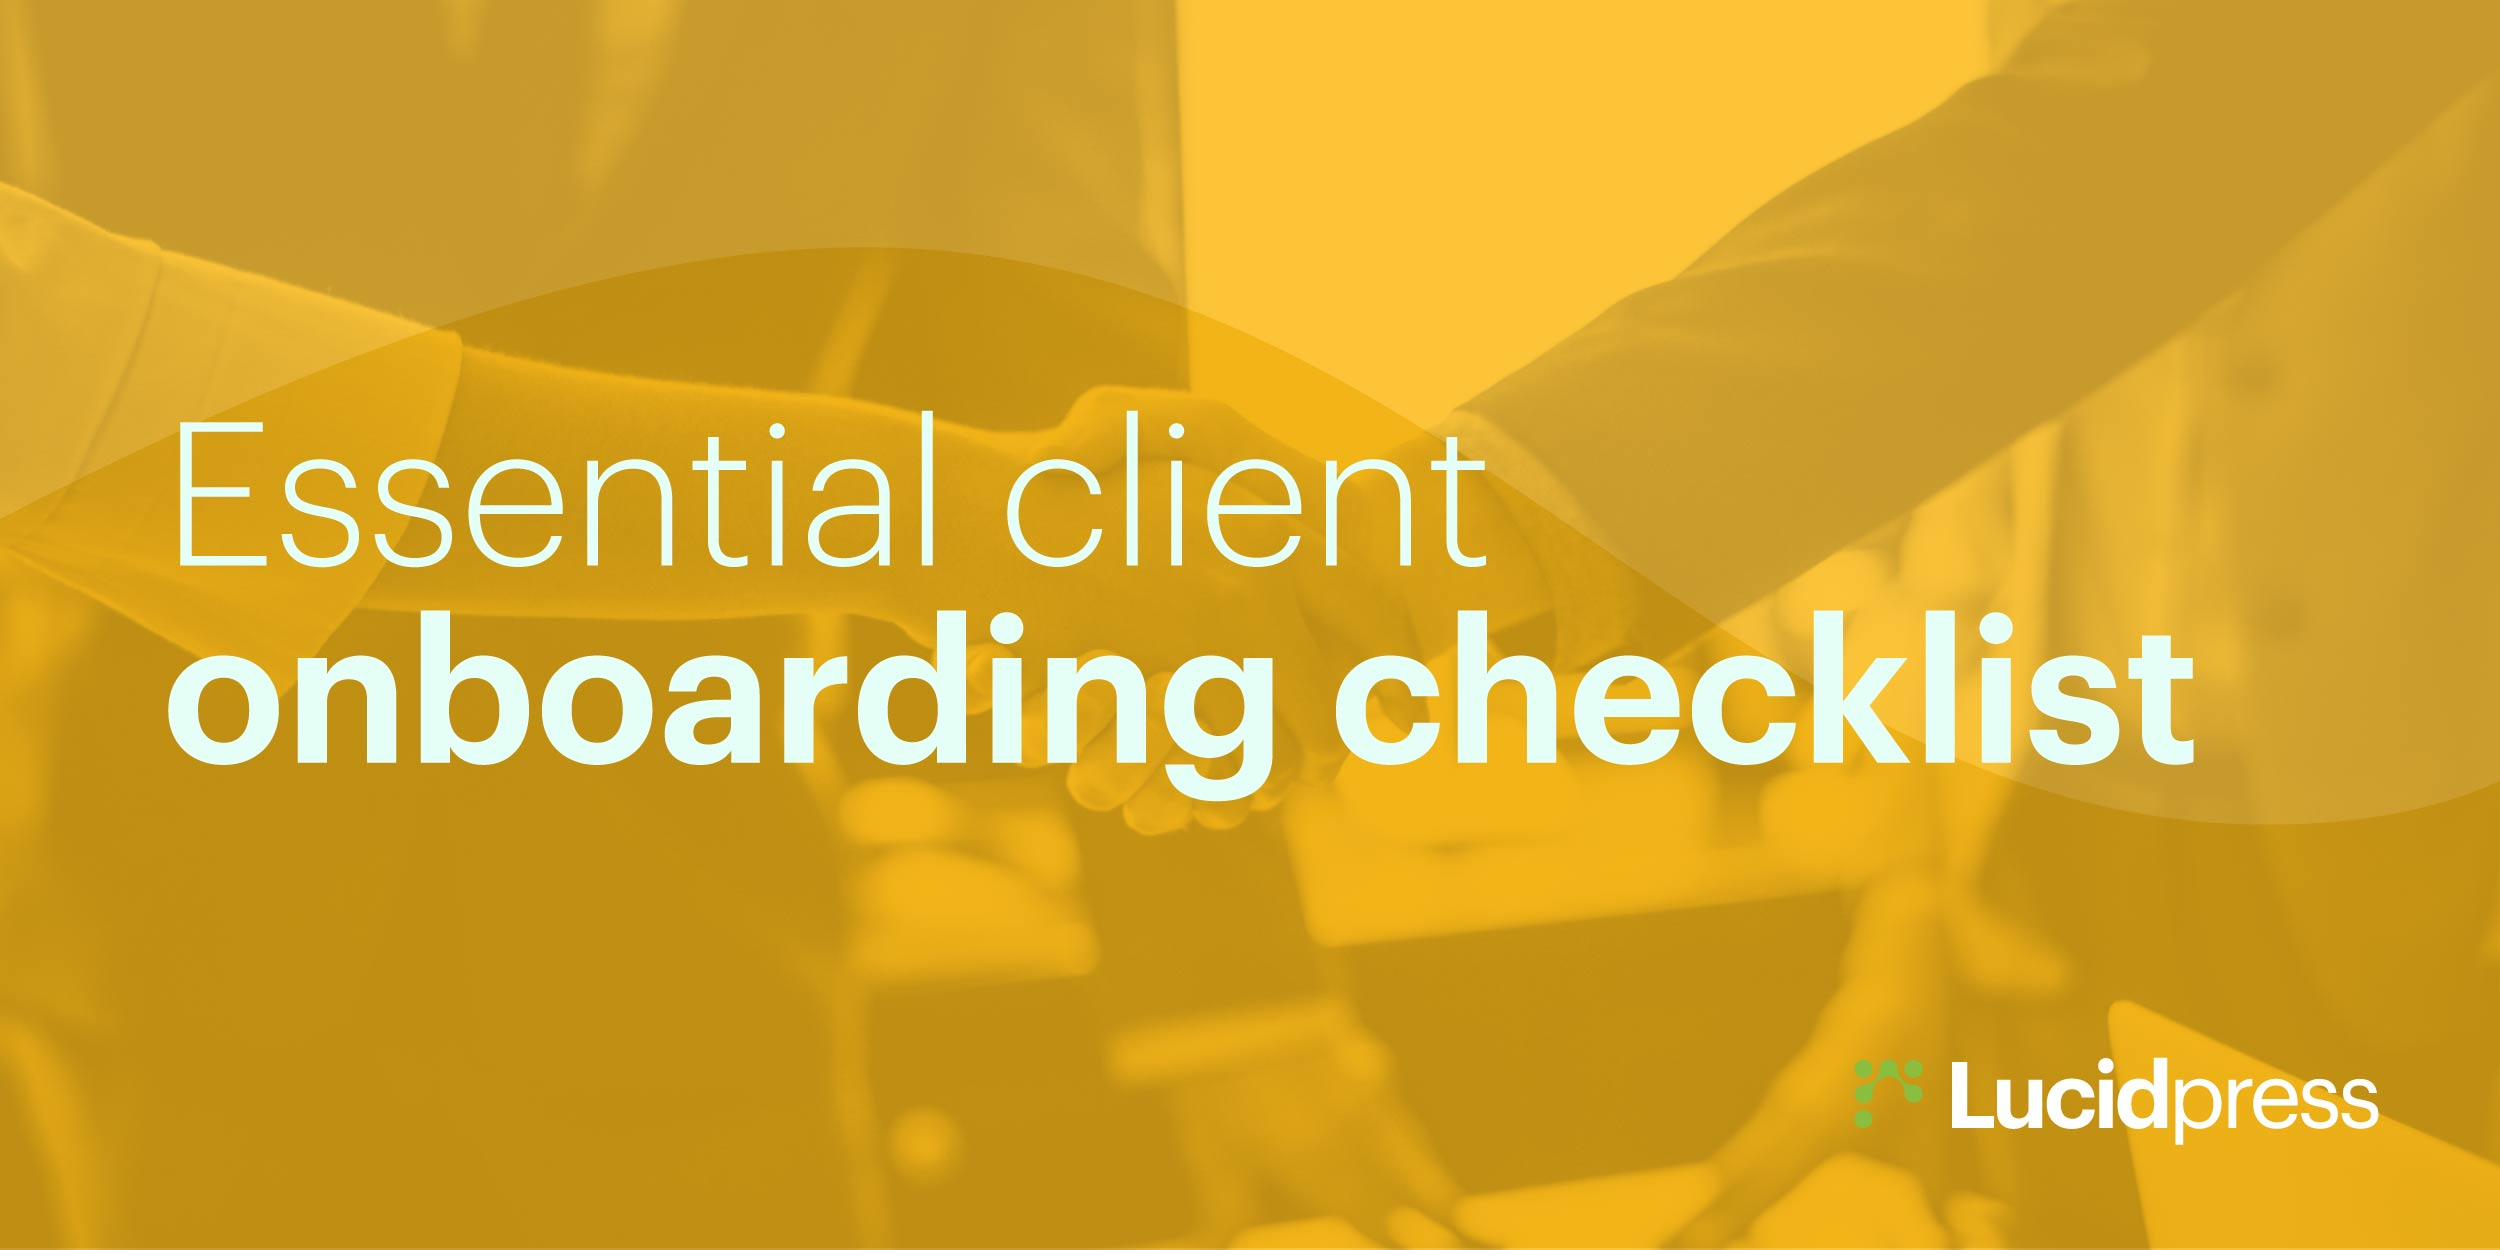 Essential Client Onboarding Checklist for Agencies in 2019   Lucidpress